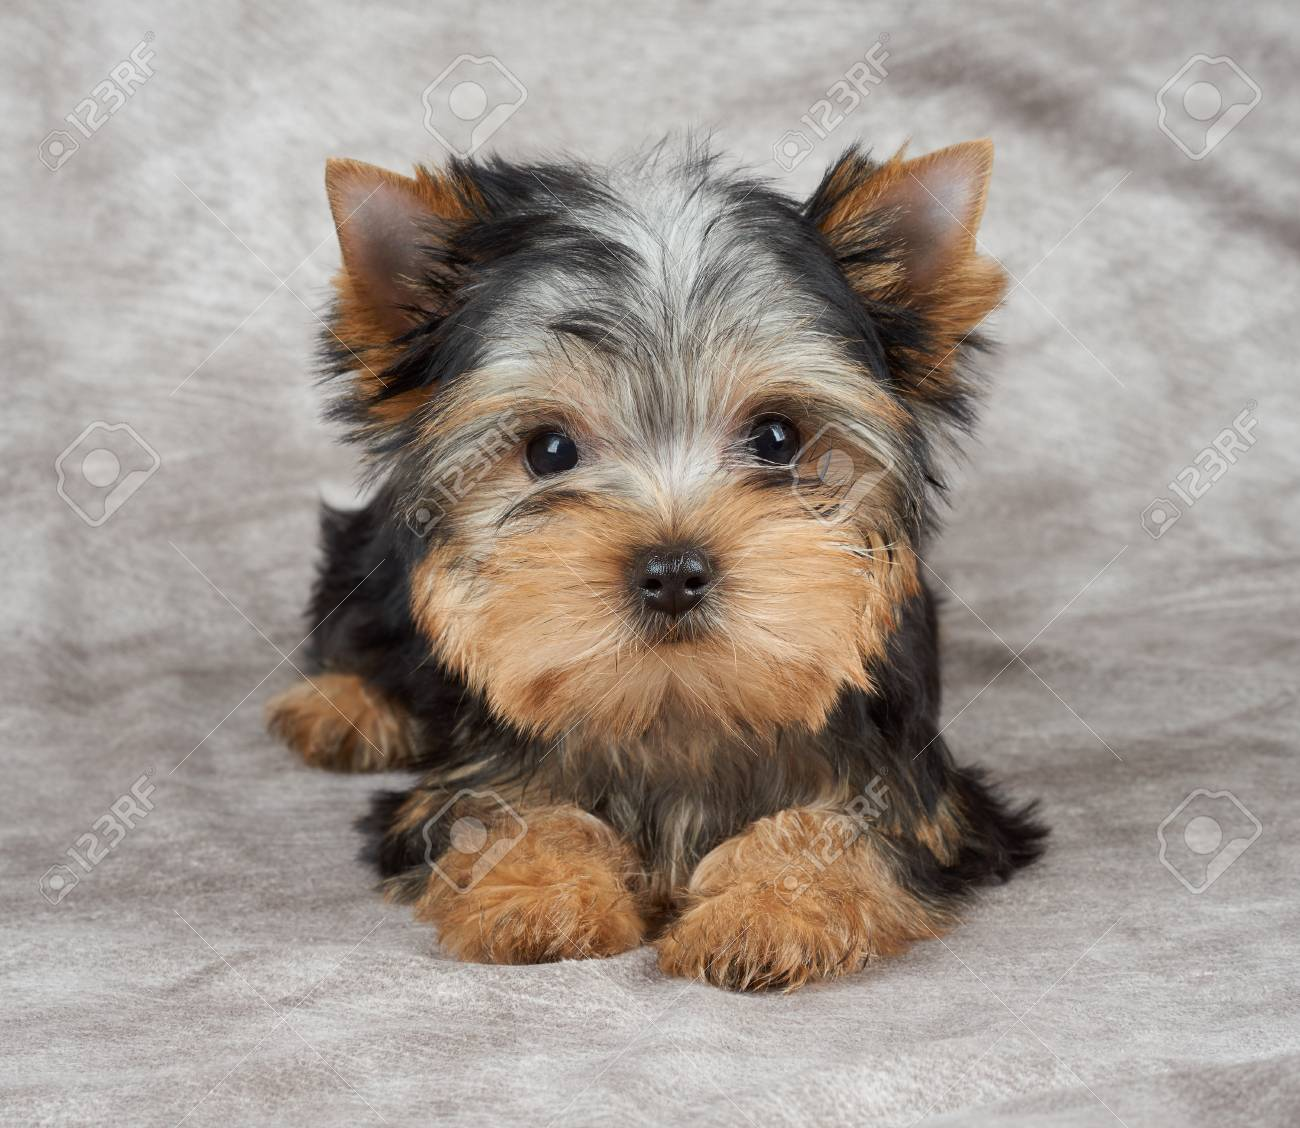 puppy of the yorkshire terrier on beige textile background stock